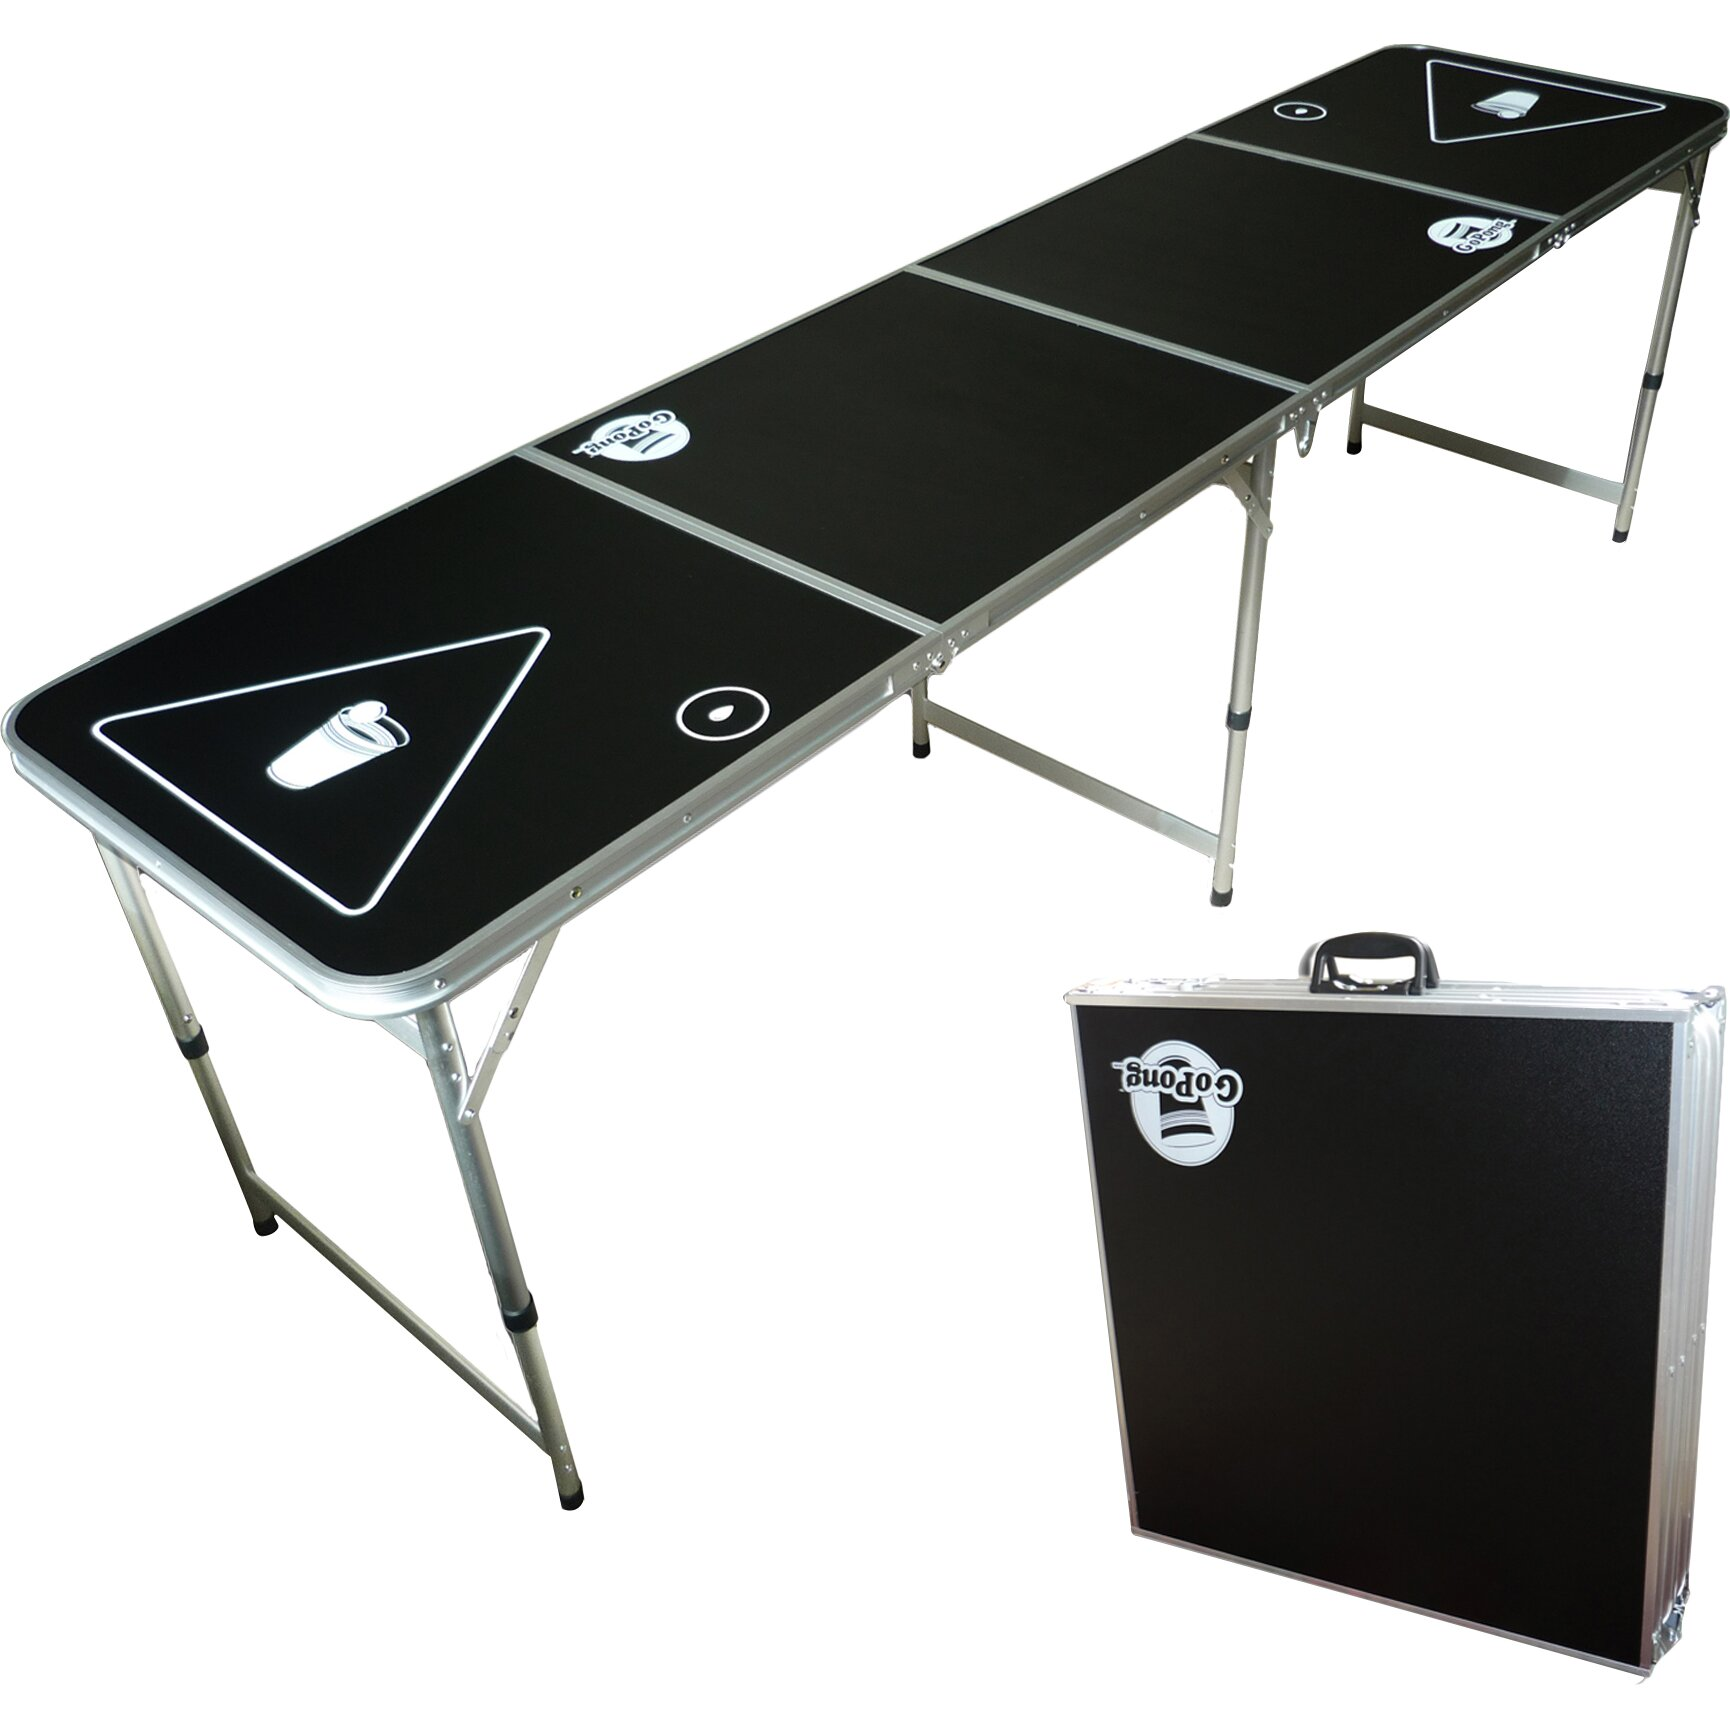 Beer pong table dimensions - Beer Pong Table Dimensions Beer Pong Regulation Table Dimensions Gopong Portable Beer Pong Table